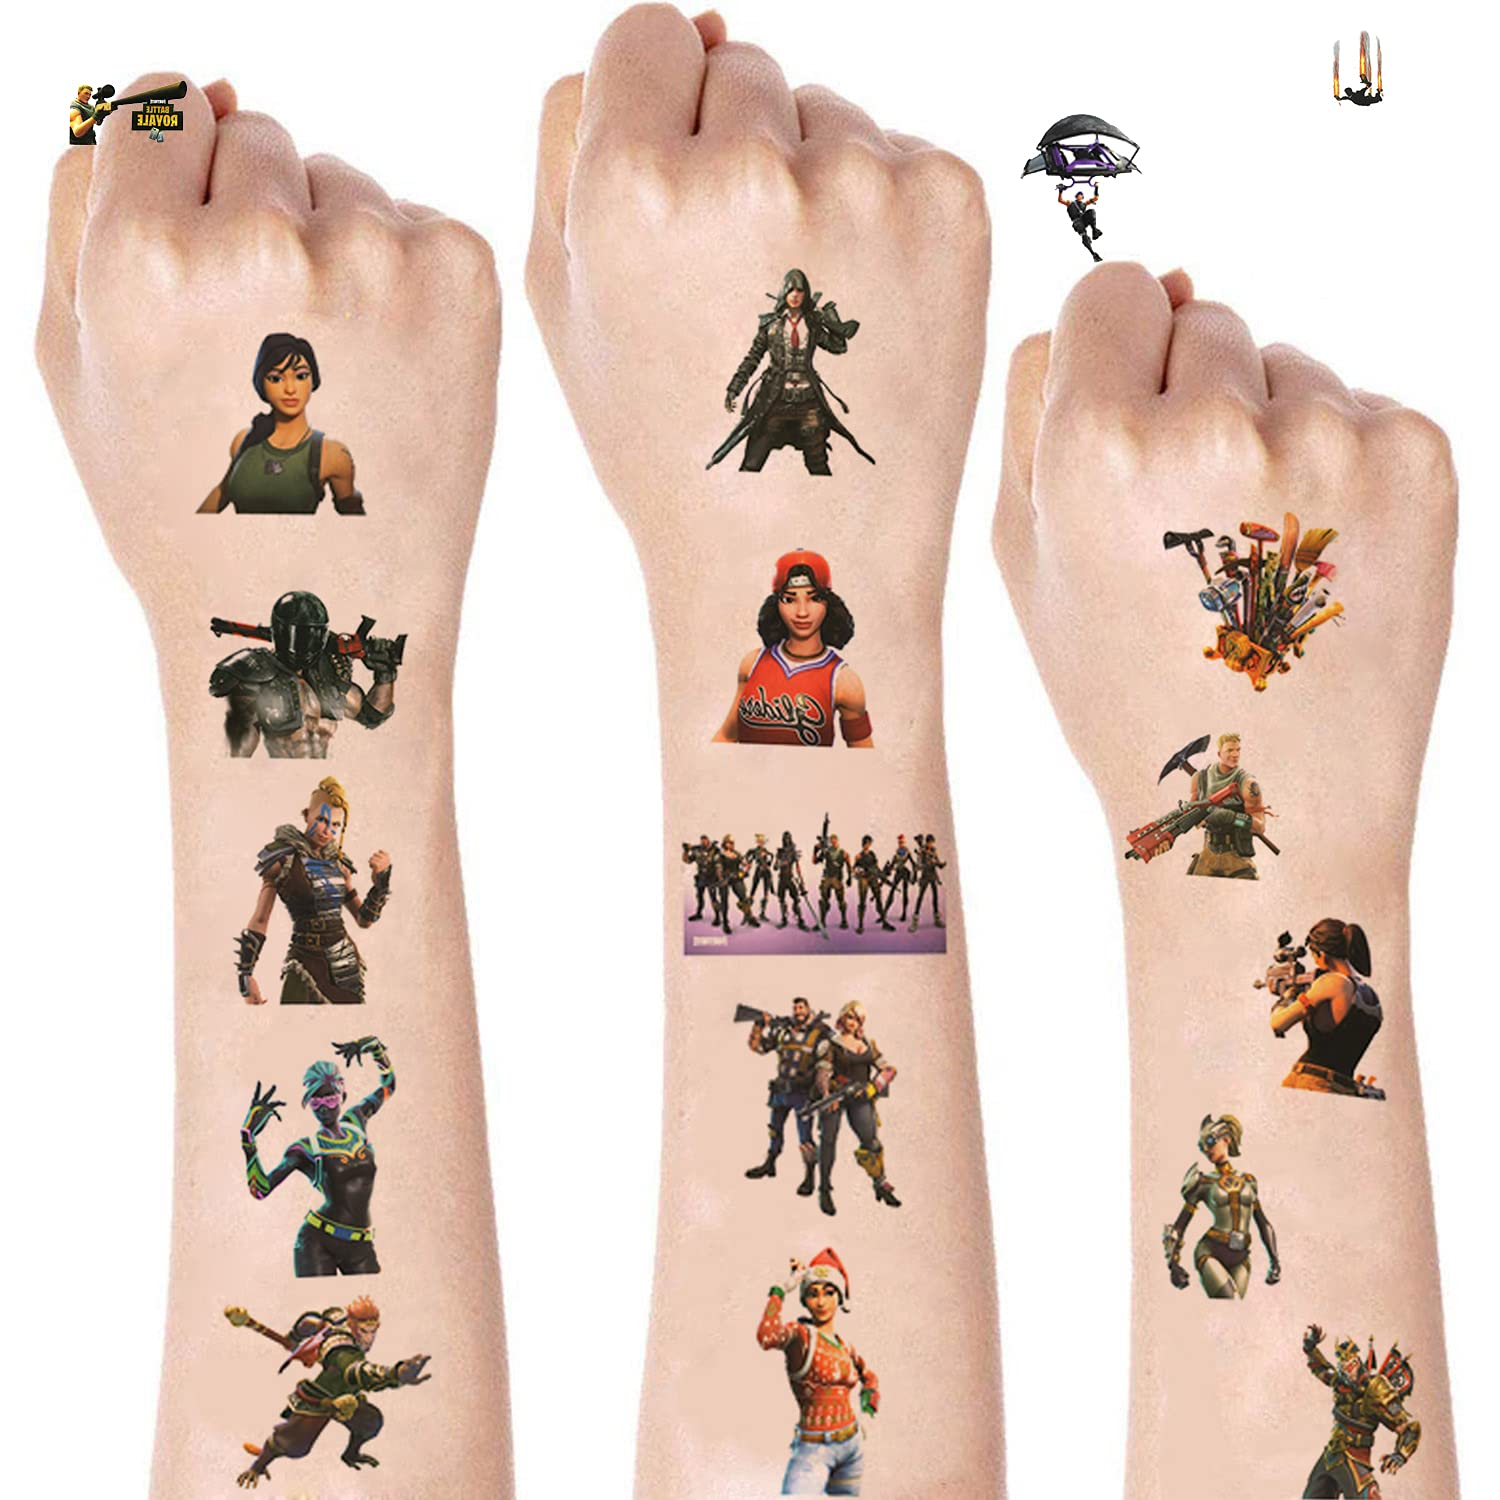 26. Fortnite Battle Royale Temporary Tattoos for Party